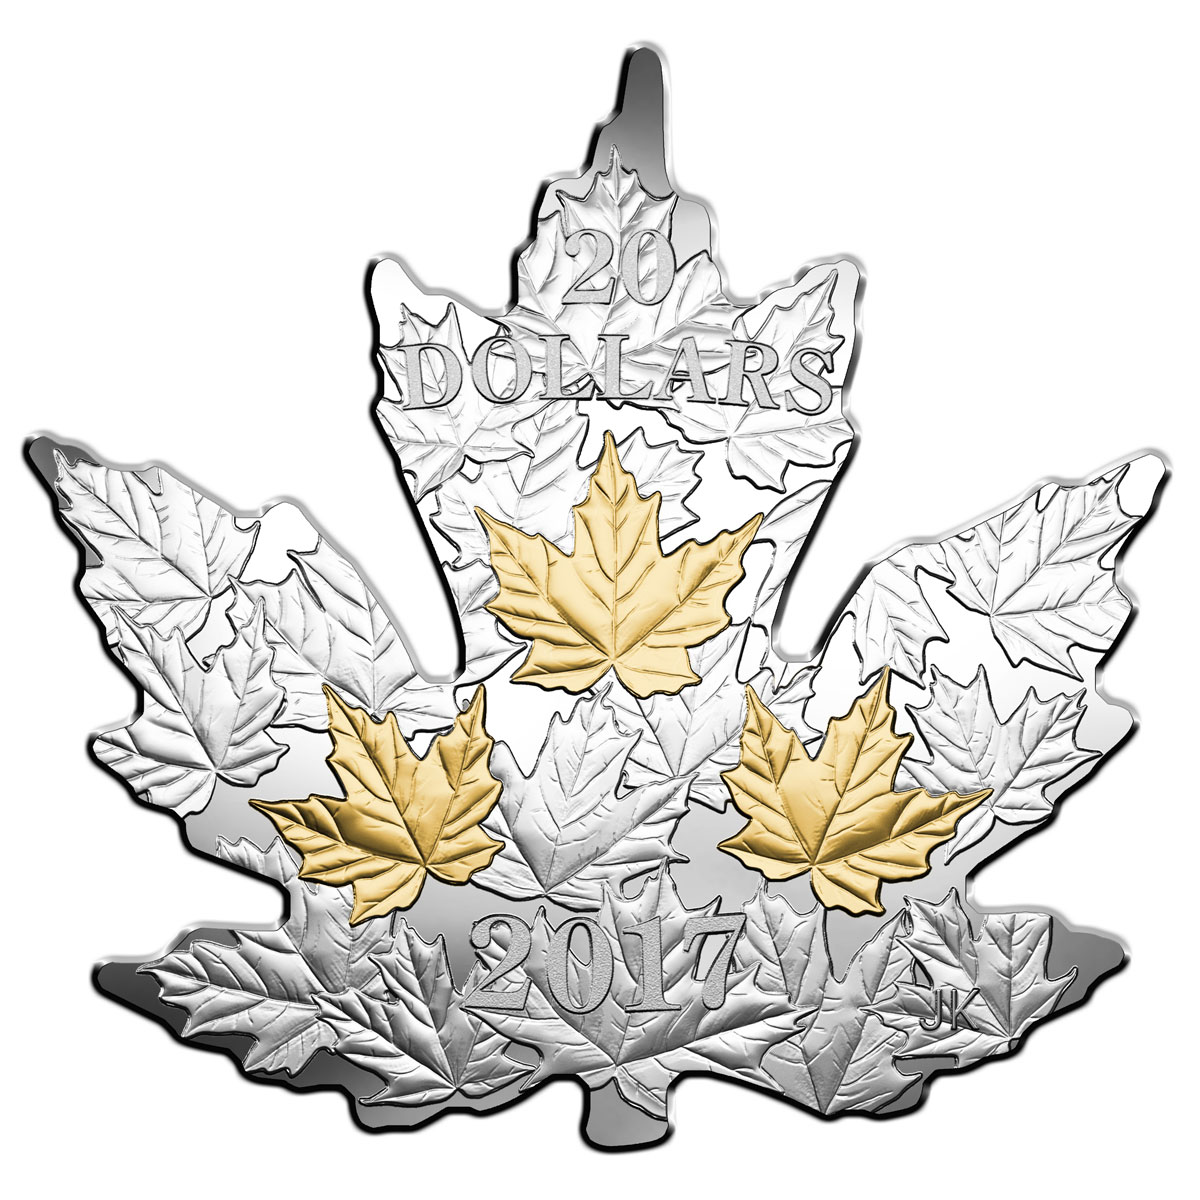 2017 Canada Maple Leaf Shaped 1 oz Silver Gilt Proof $20 Coin GEM Proof OGP